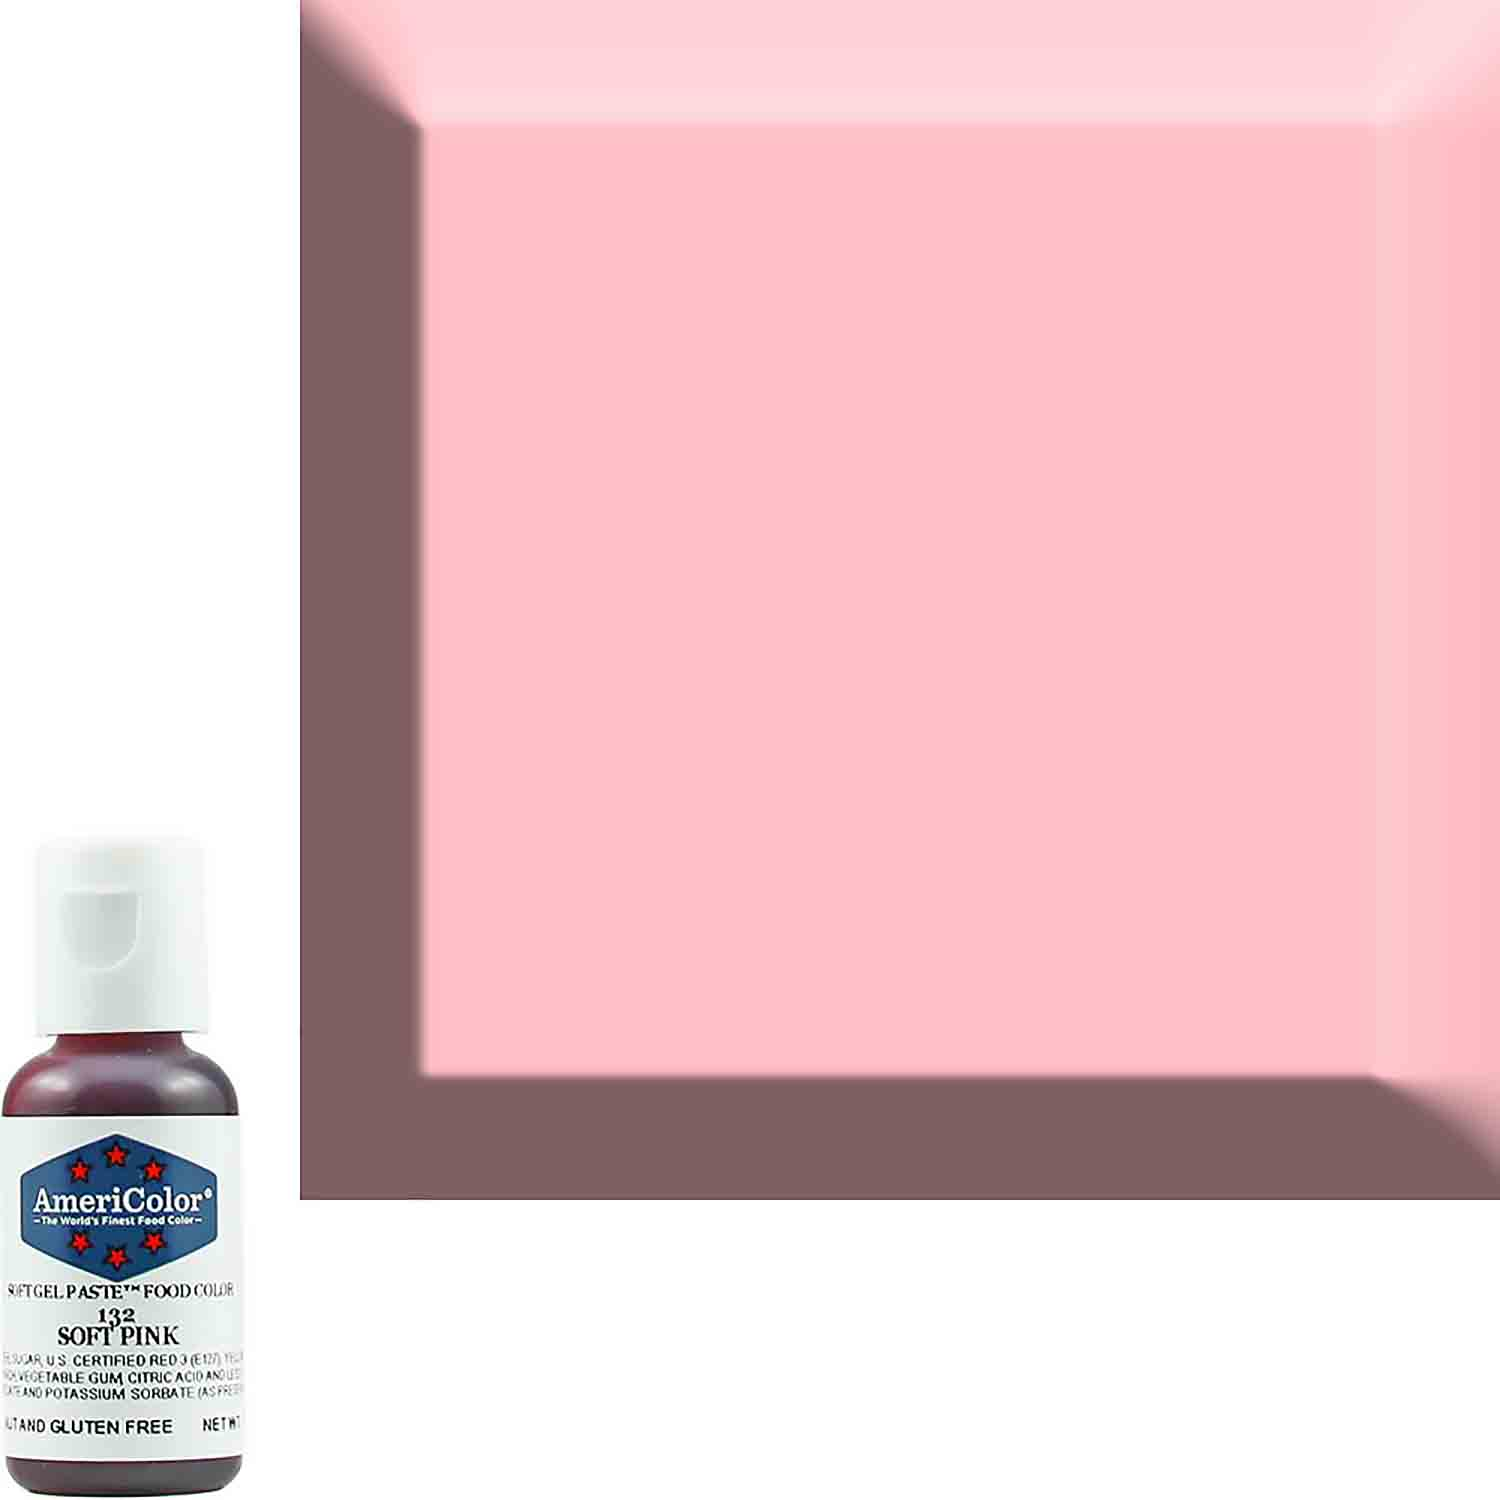 Soft Pink Americolor® Soft Gel Paste Food Color (Old # 41-8032)